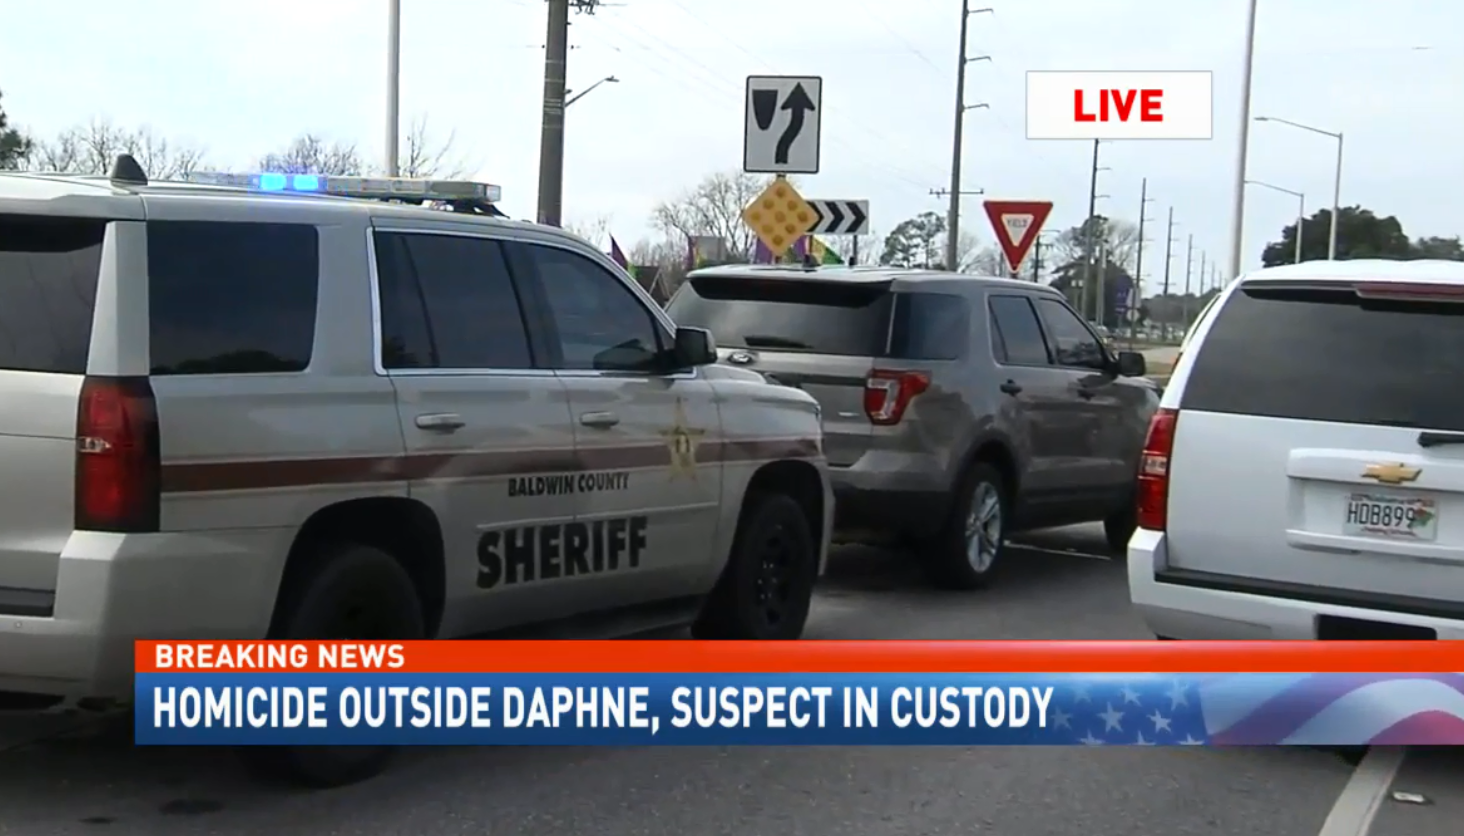 (image: WPMI) Sheriffs on scene of homicide outside Daphne